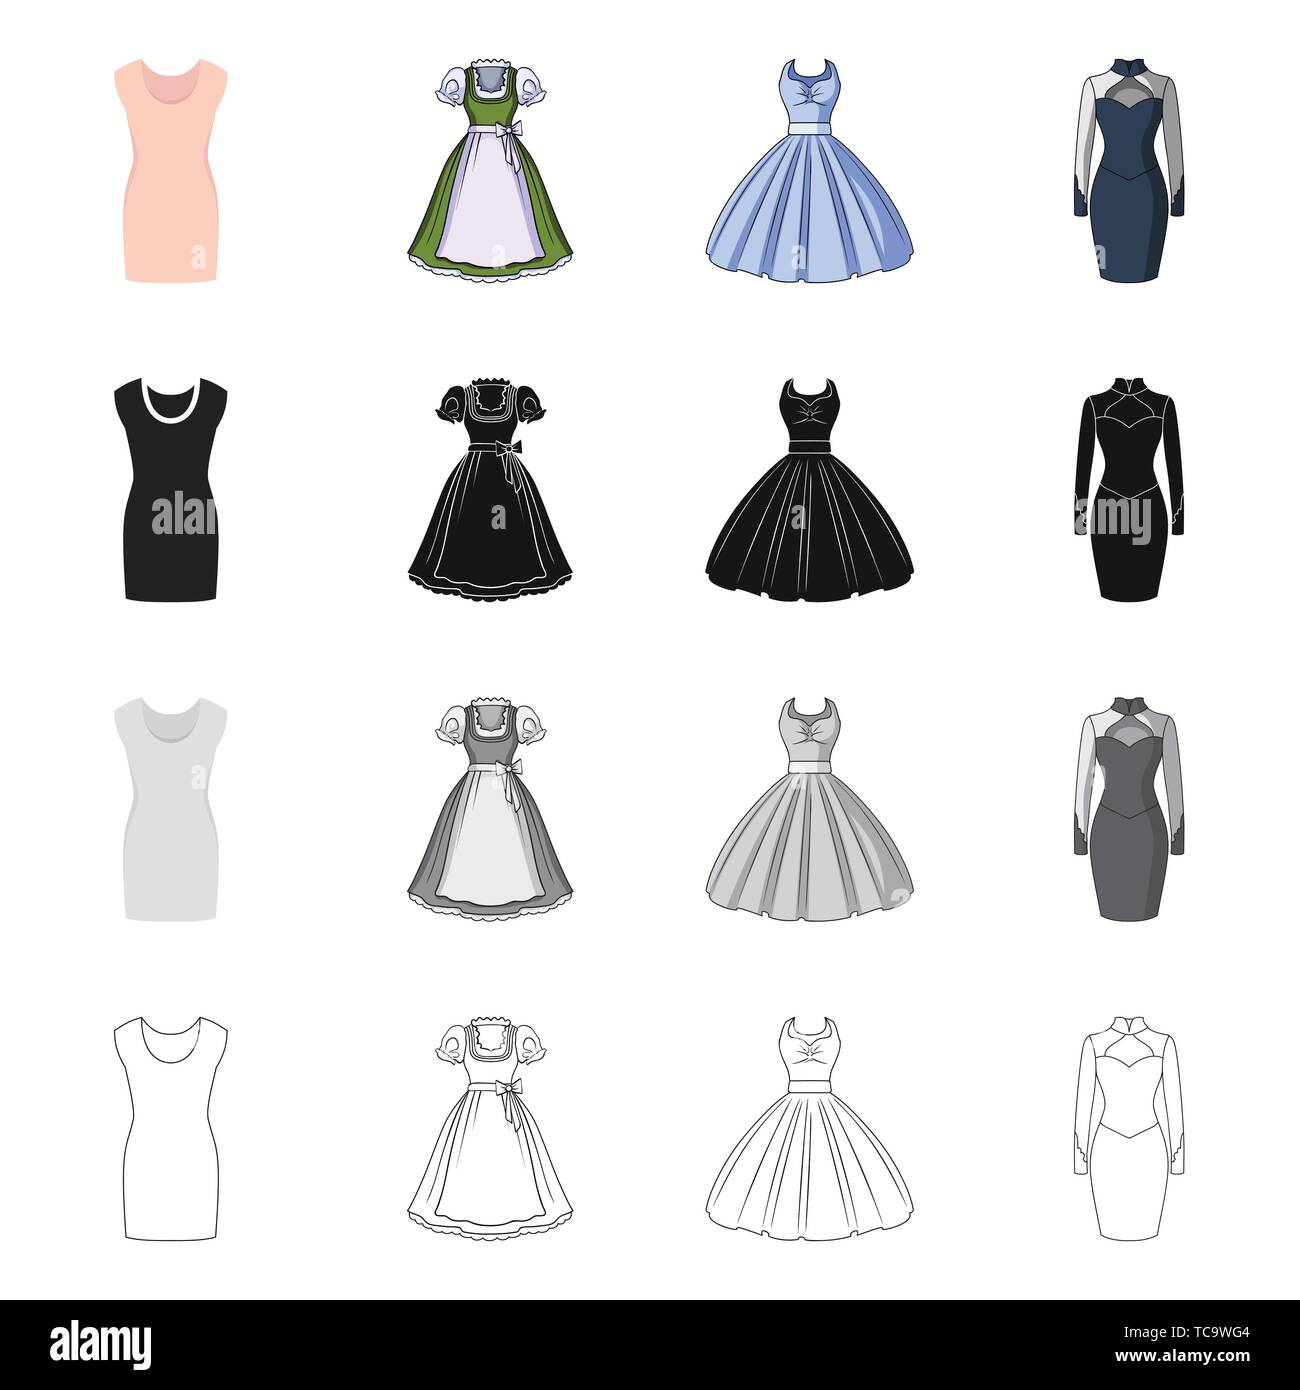 Vector design of dress and clothes icon. Set of dress and evening stock vector illustration. - Stock Vector